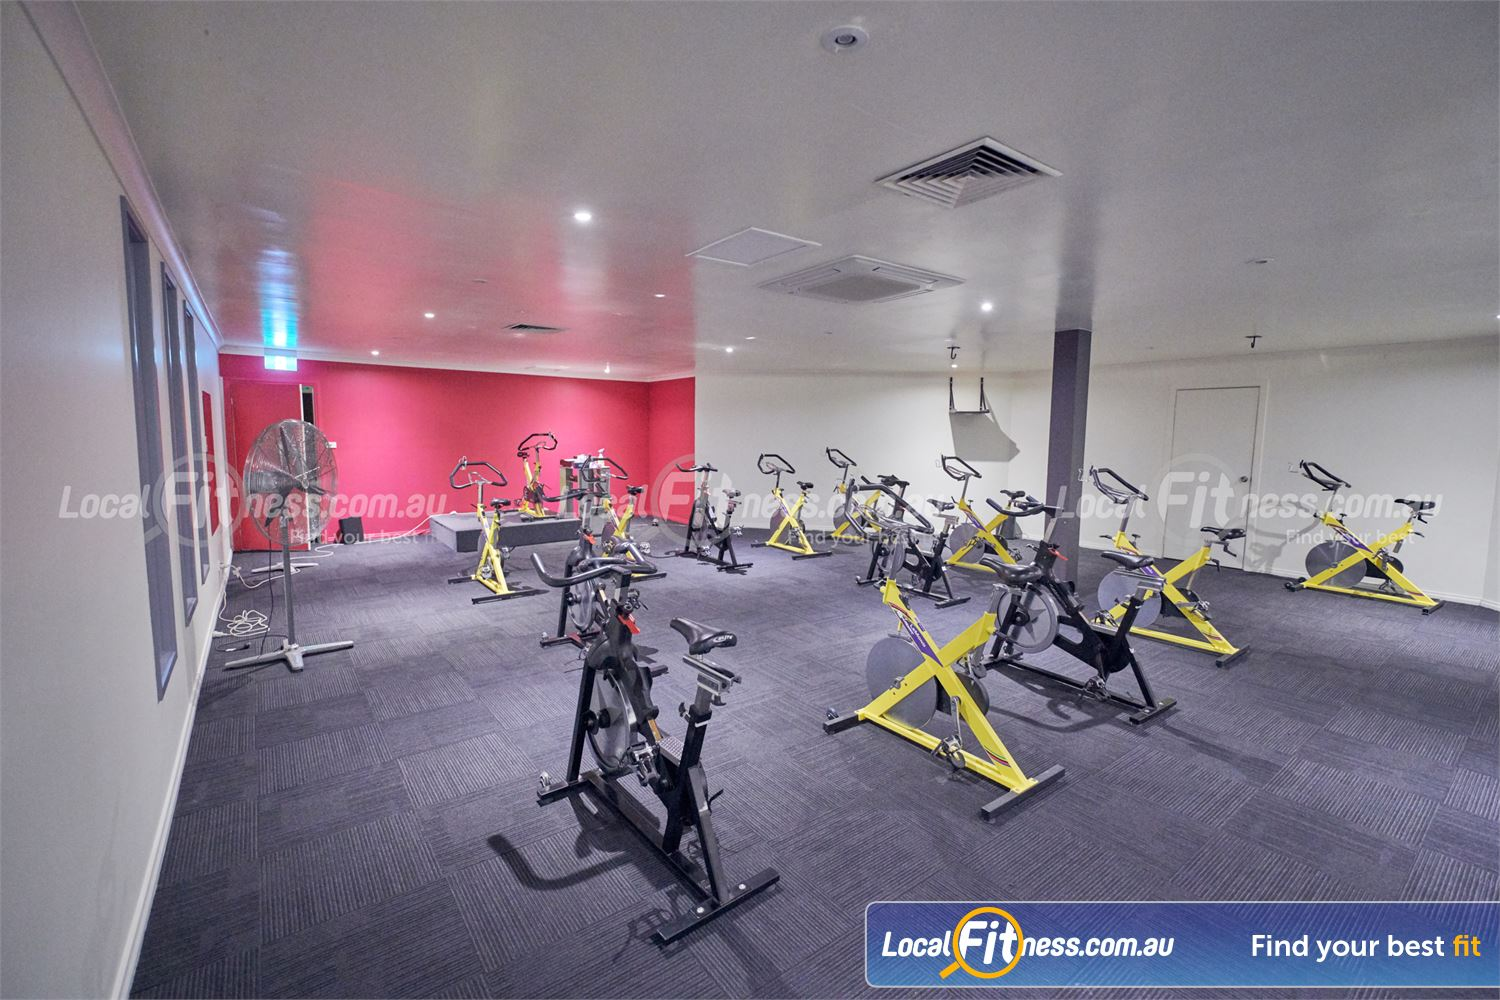 Fernwood Fitness Near Templestowe Lower The Bulleen spin cycle studio with state of the art cycle bikes.